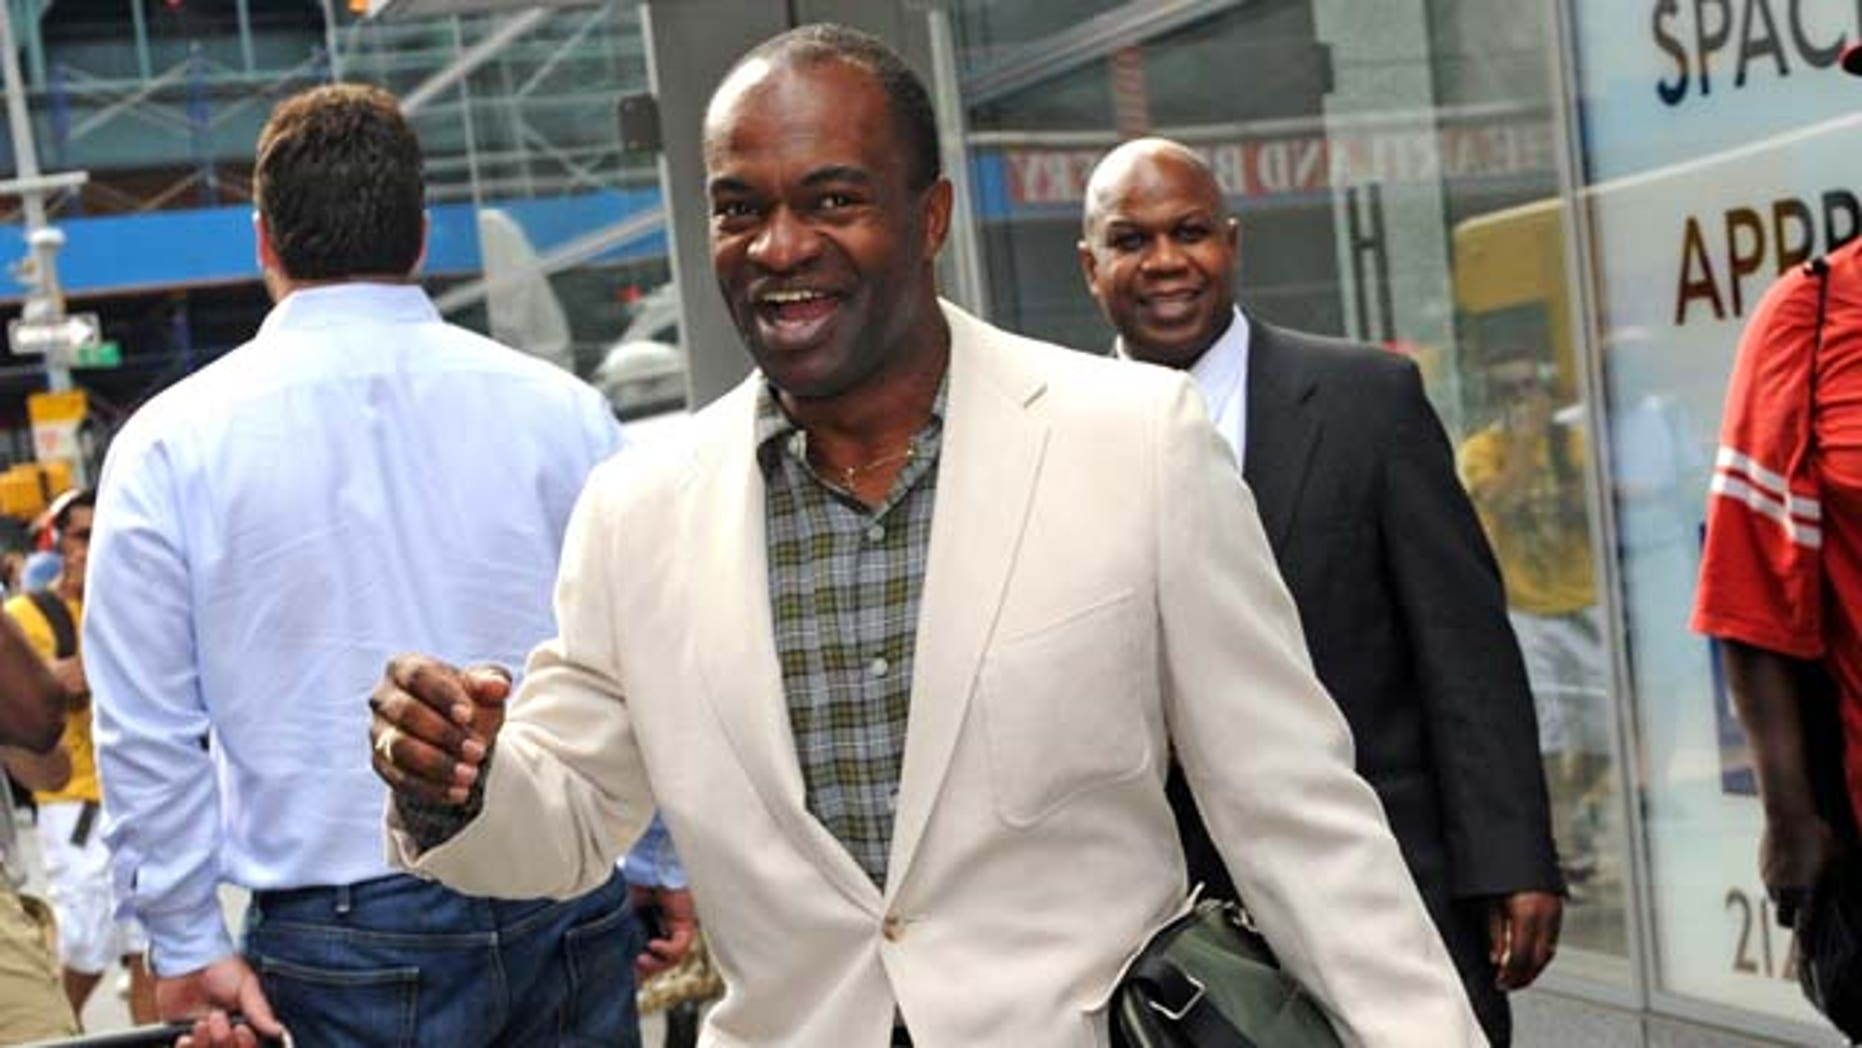 NFL player Association executive director DeMaurice Smith exits a law firm where contract  talks ended, Friday July 15, 2011, in New York. Significant progress on a major sticking point in the NFL labor impasse â soaring rookie salaries â during marathon talks Thursday raised hopes that a tentative agreement in principle could perhaps come within 24 hours, according to two people familiar with the negotiations. (AP Photo/ Louis Lanzano)